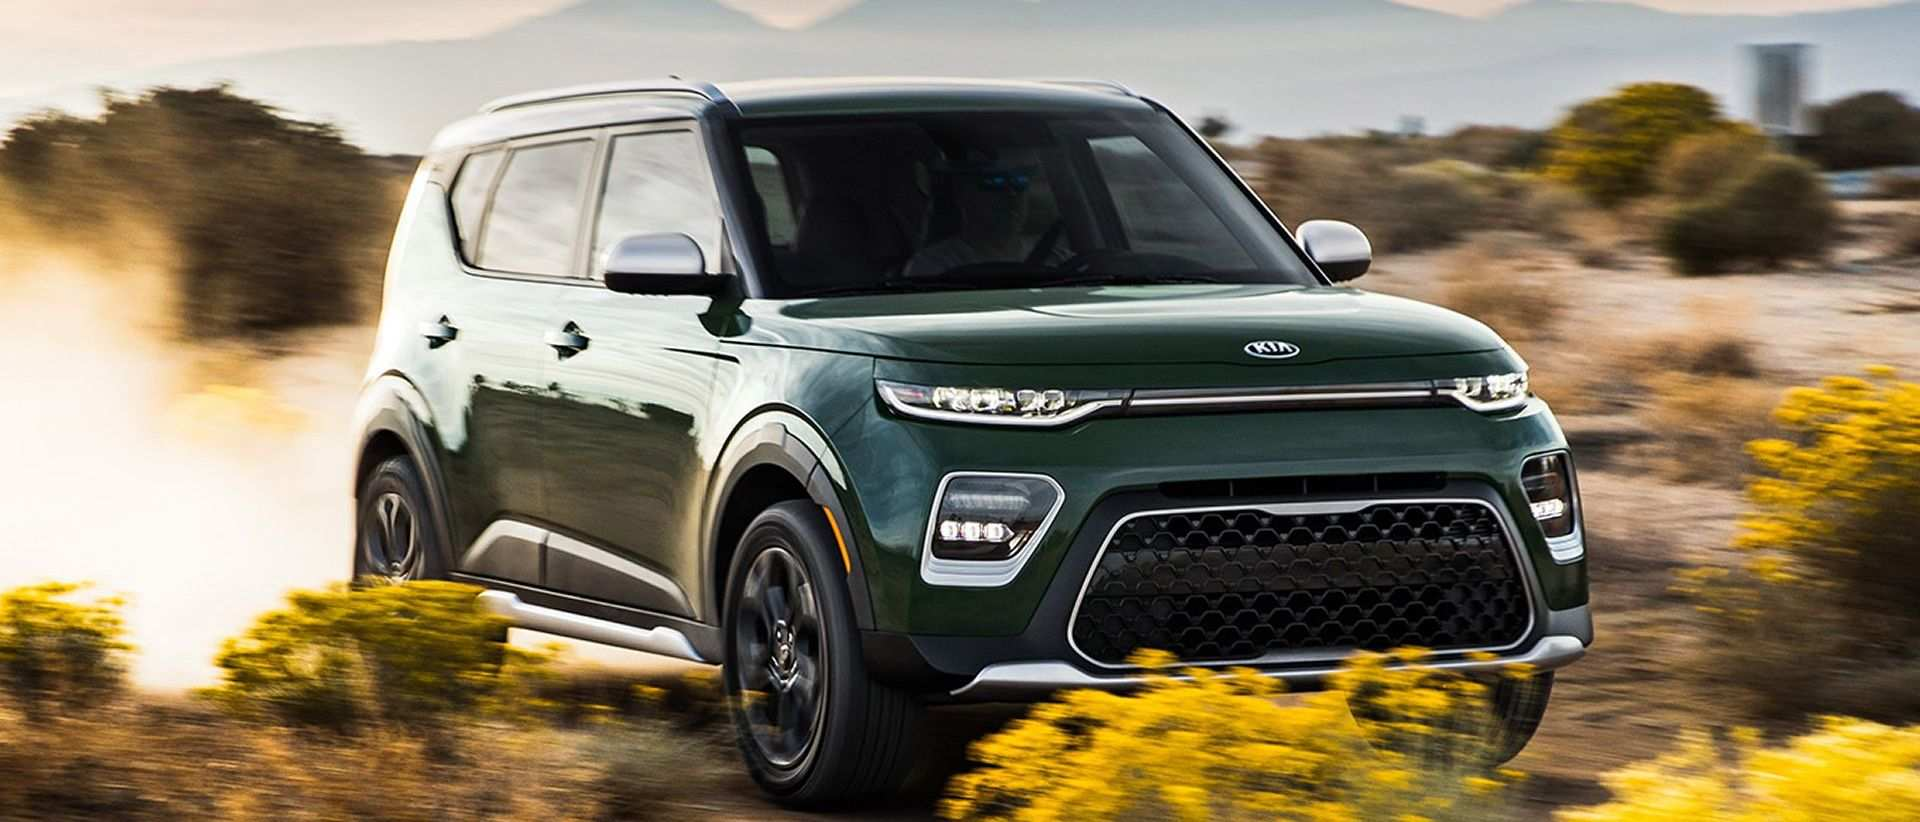 30 Gallery of When Is The 2020 Kia Soul Coming Out Price with When Is The 2020 Kia Soul Coming Out